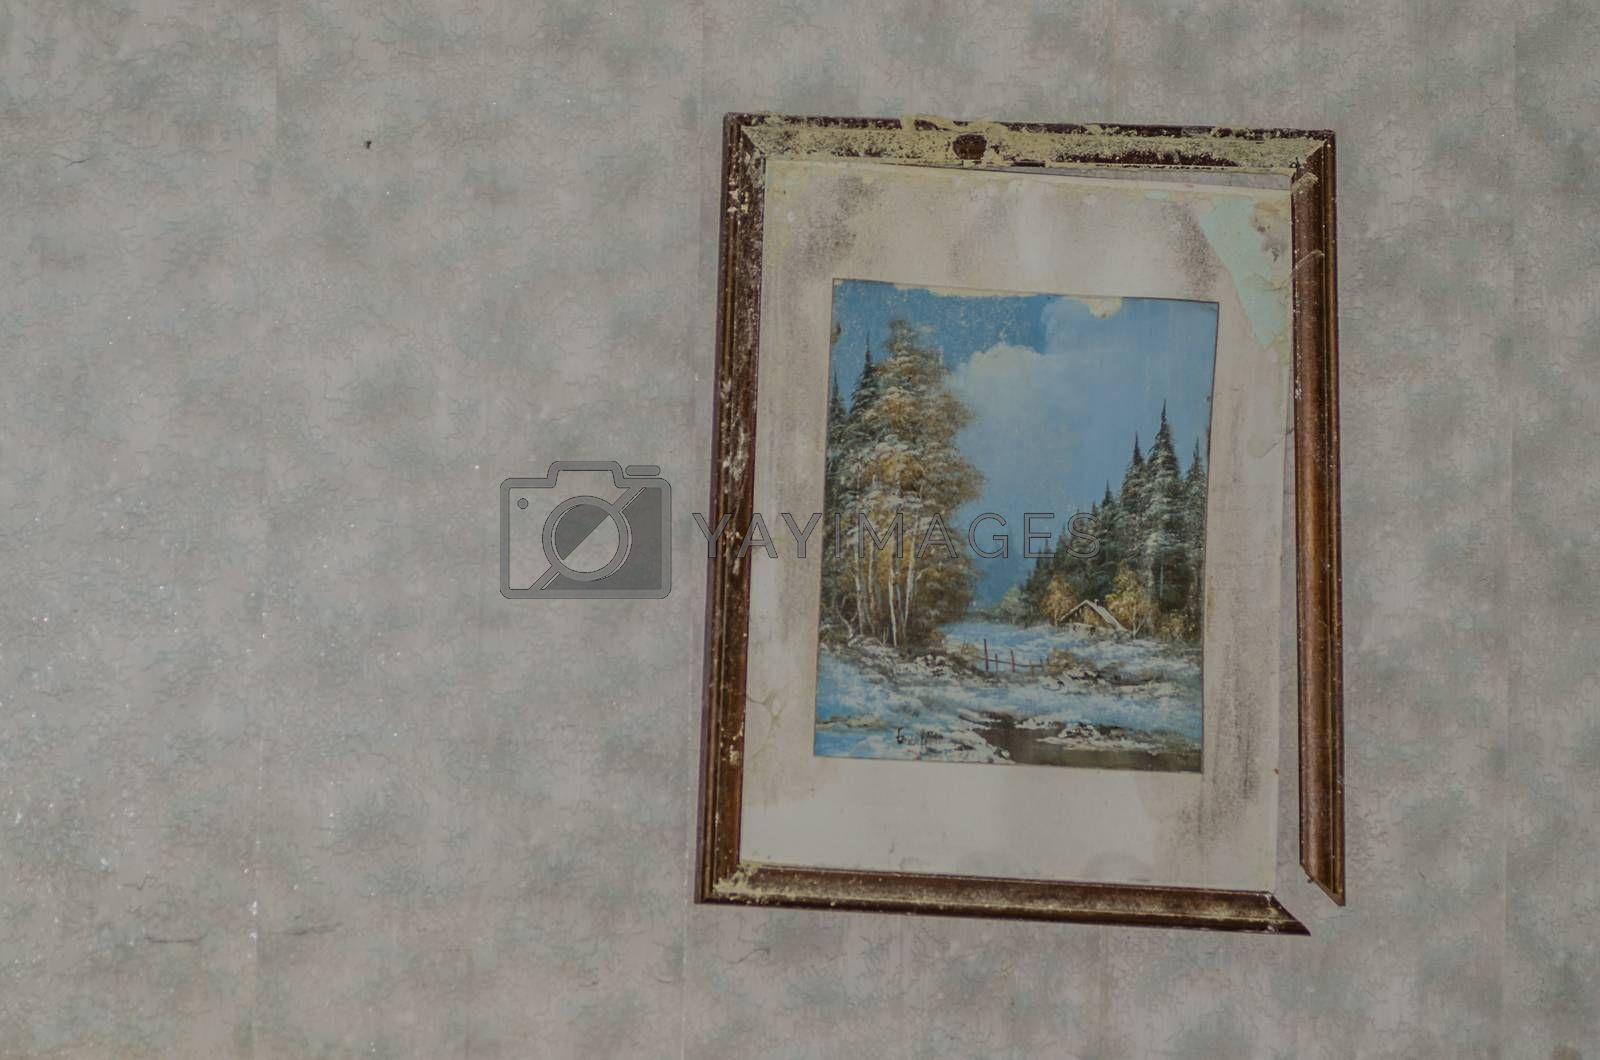 Old picture on the wall of a house